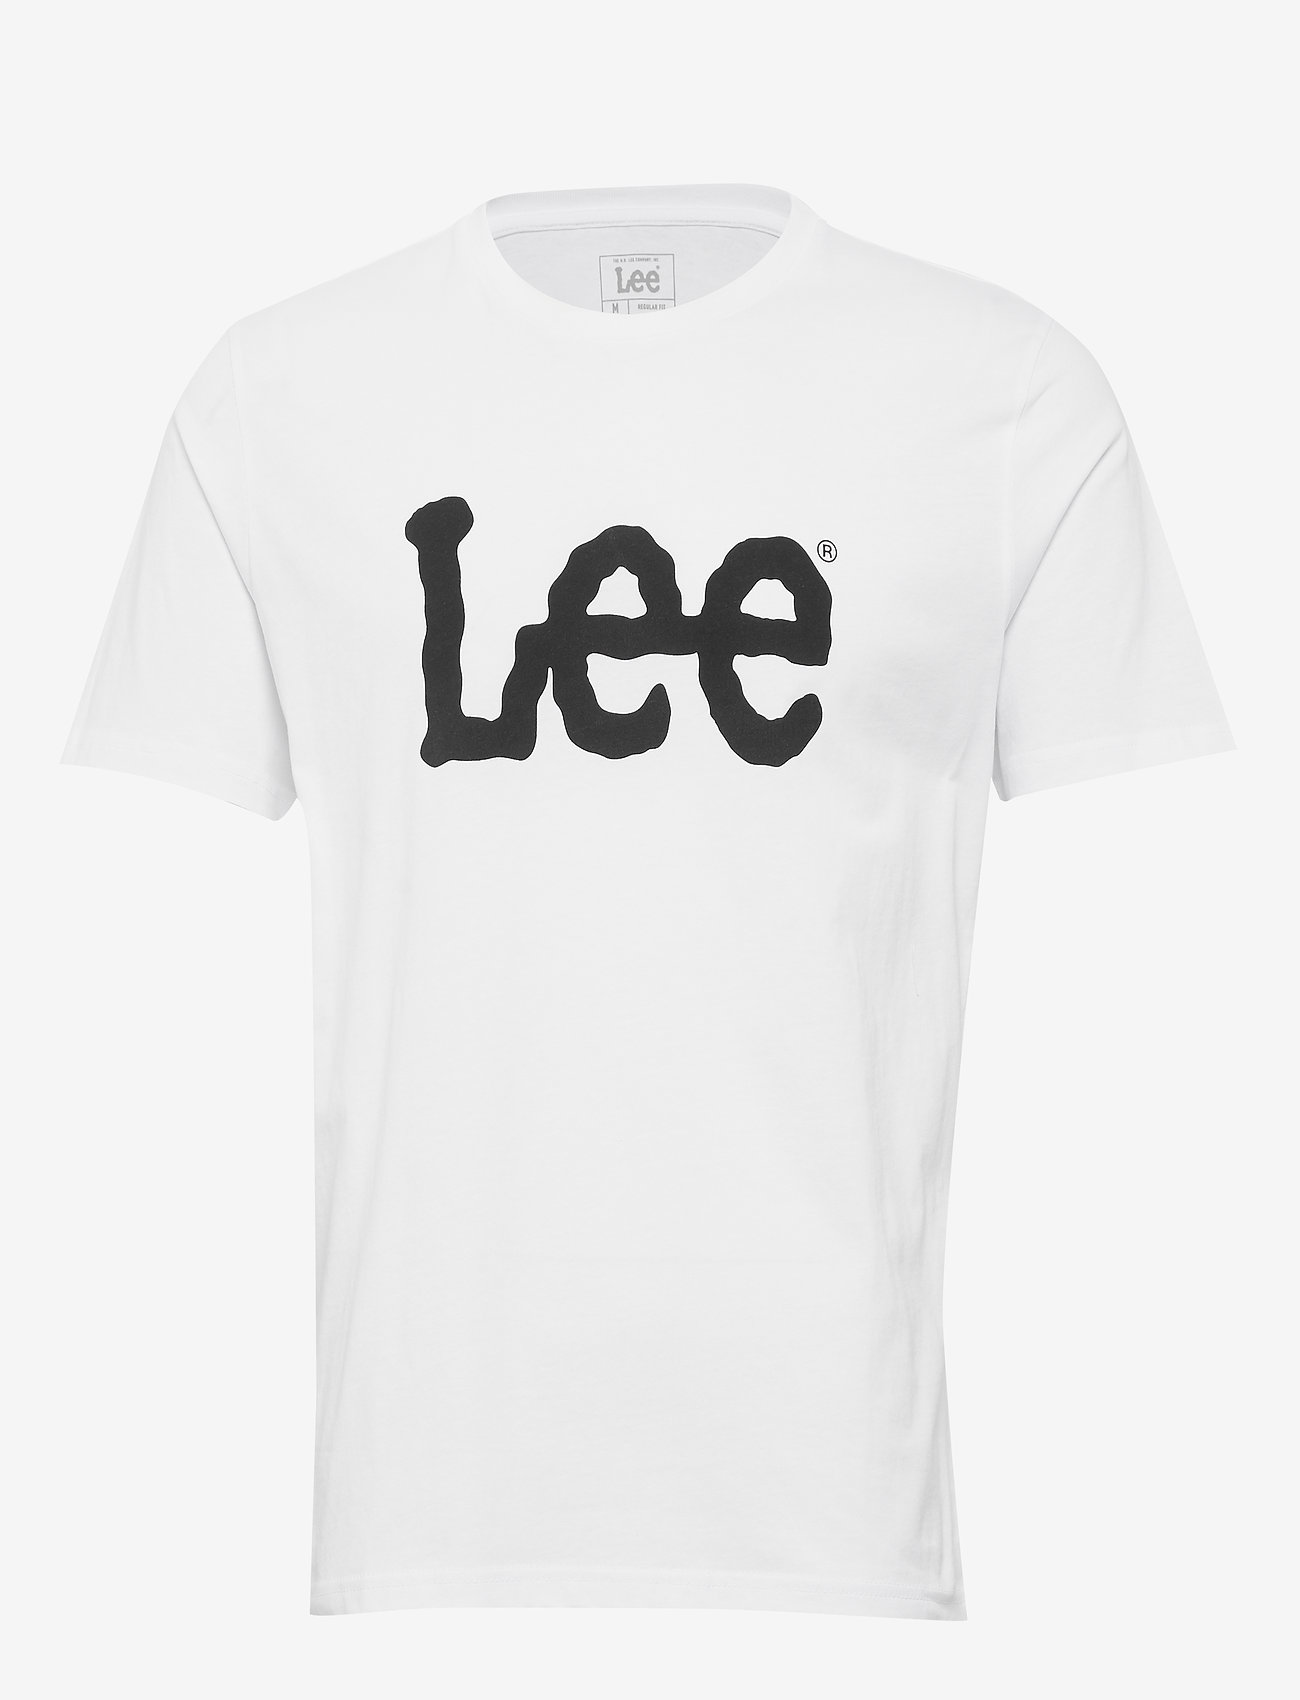 Lee Jeans - WOBBLY LOGO TEE - short-sleeved t-shirts - white - 0